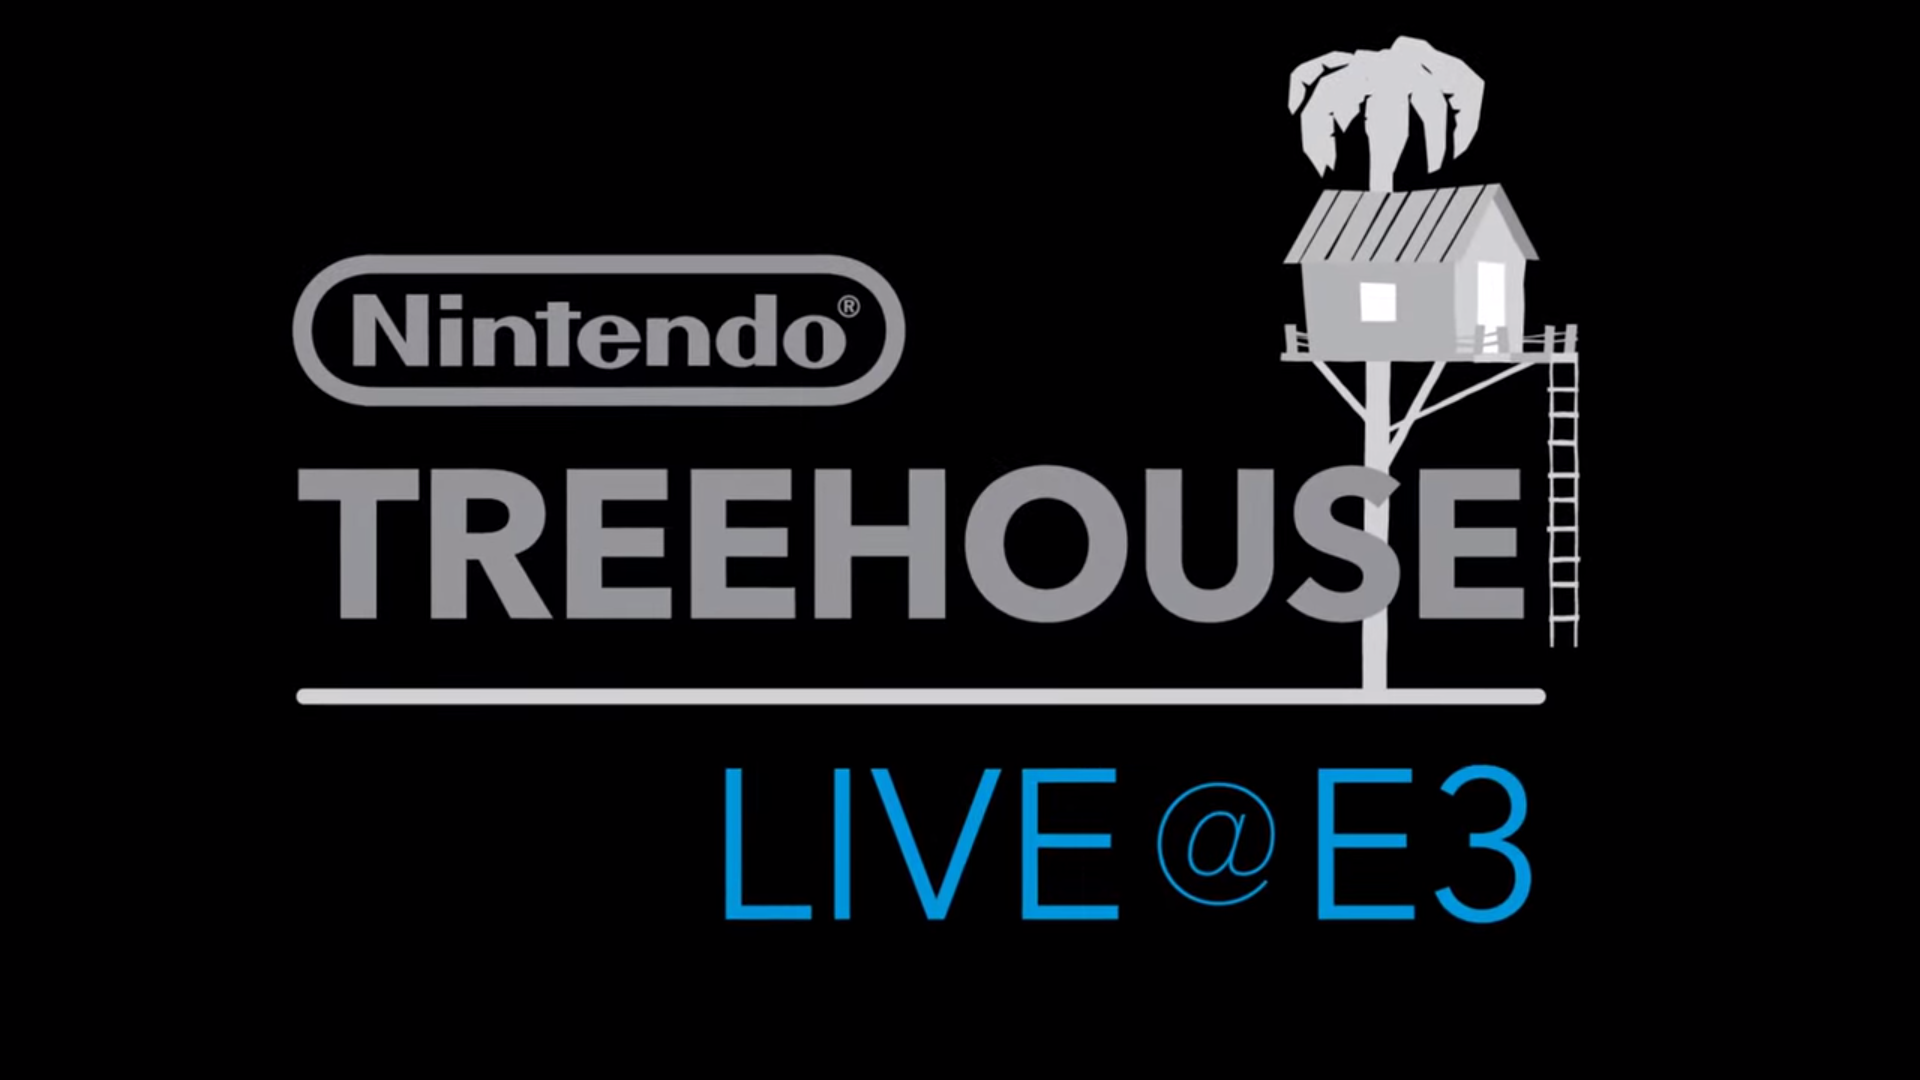 Nintendo Treehouse Live at E3